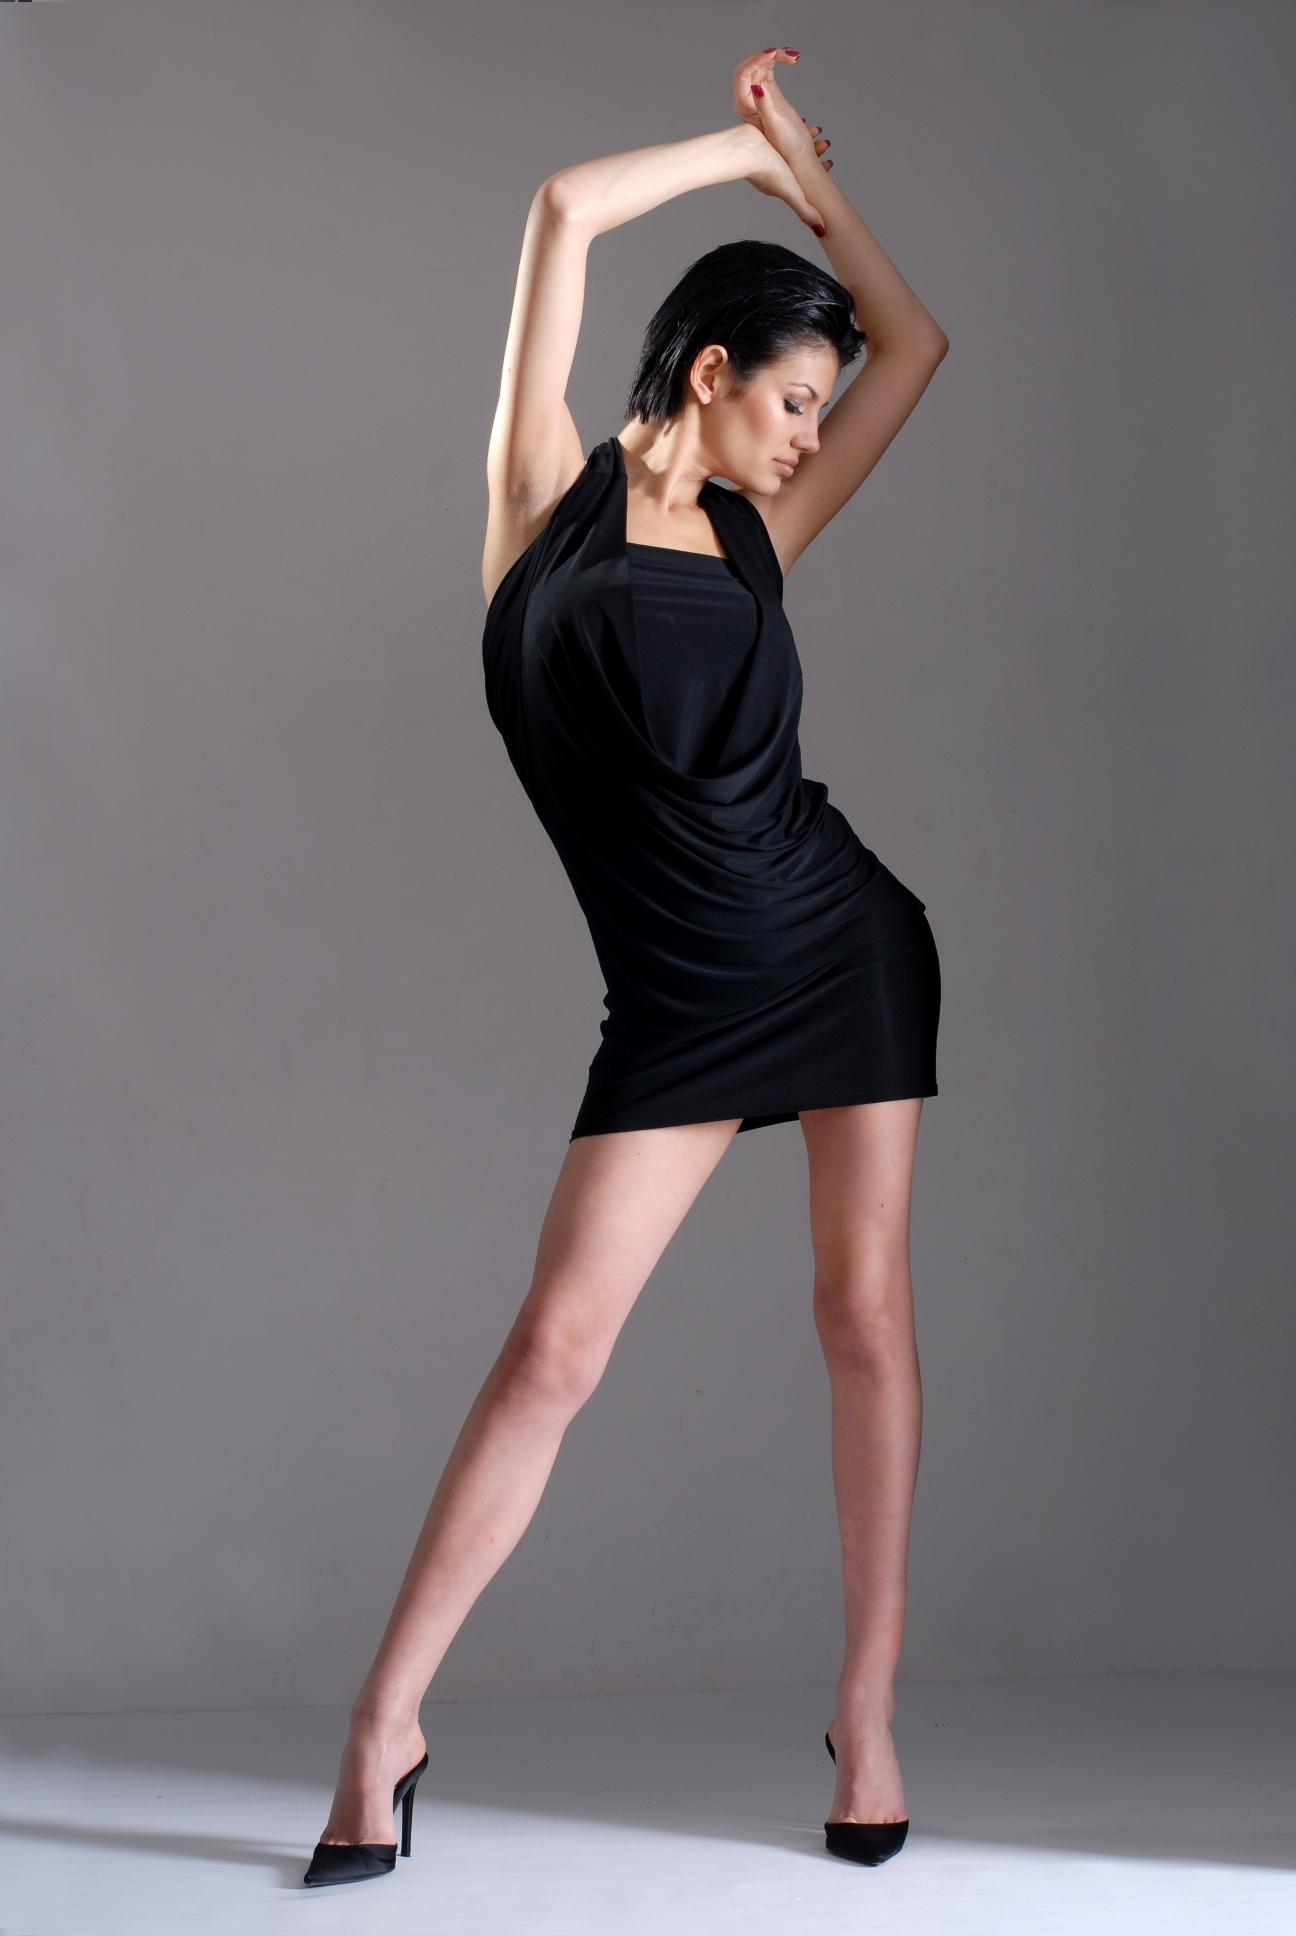 Gerardo Privat Little Black Dress 2010 1